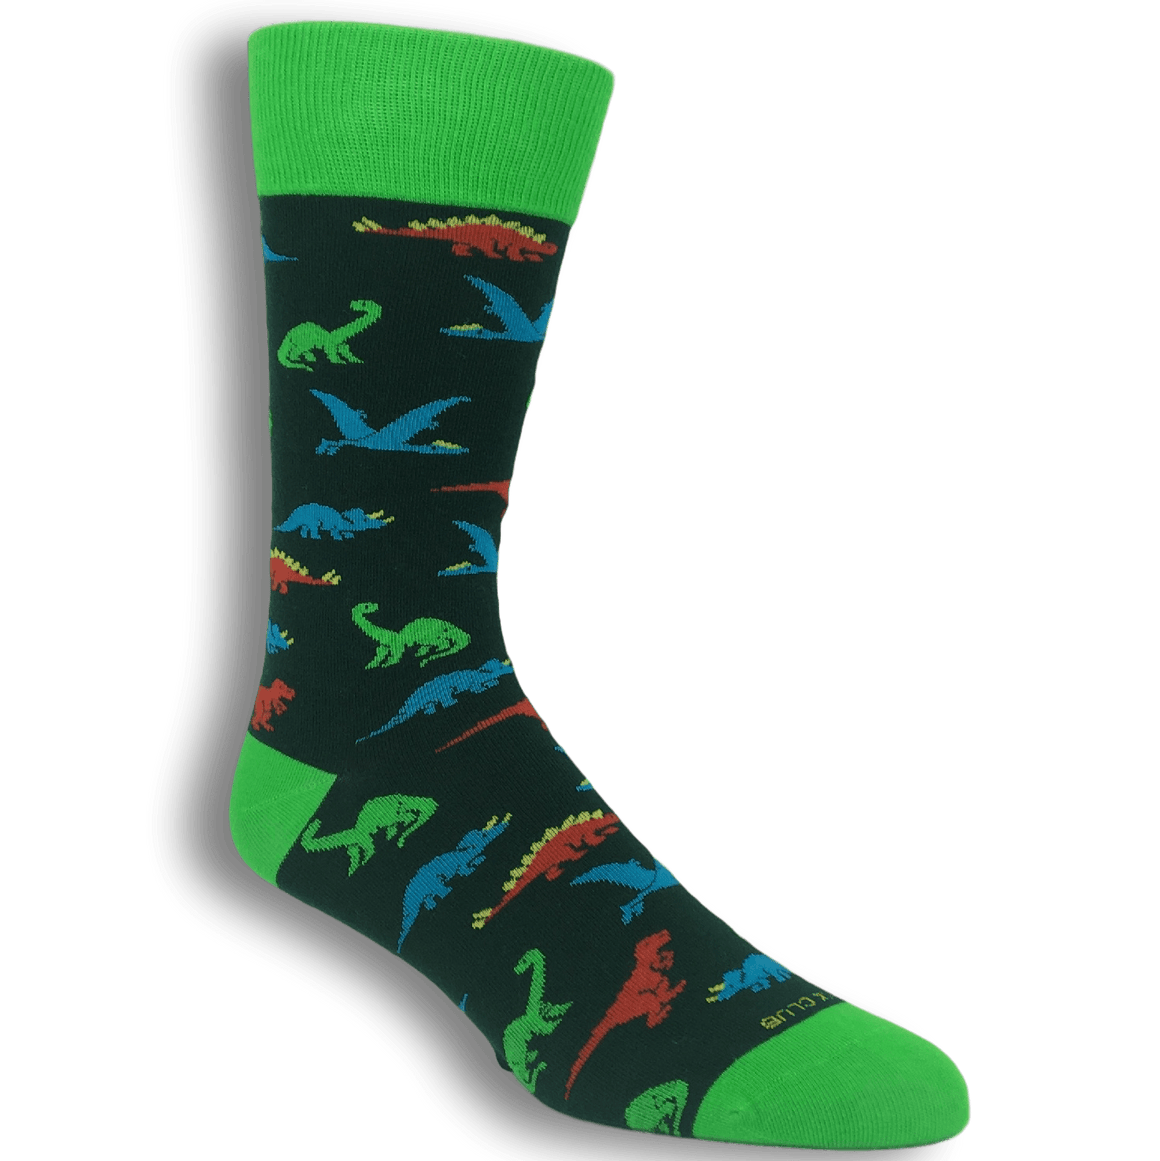 Multi Colored Dinosaur Socks by Funatic - The Sock Spot